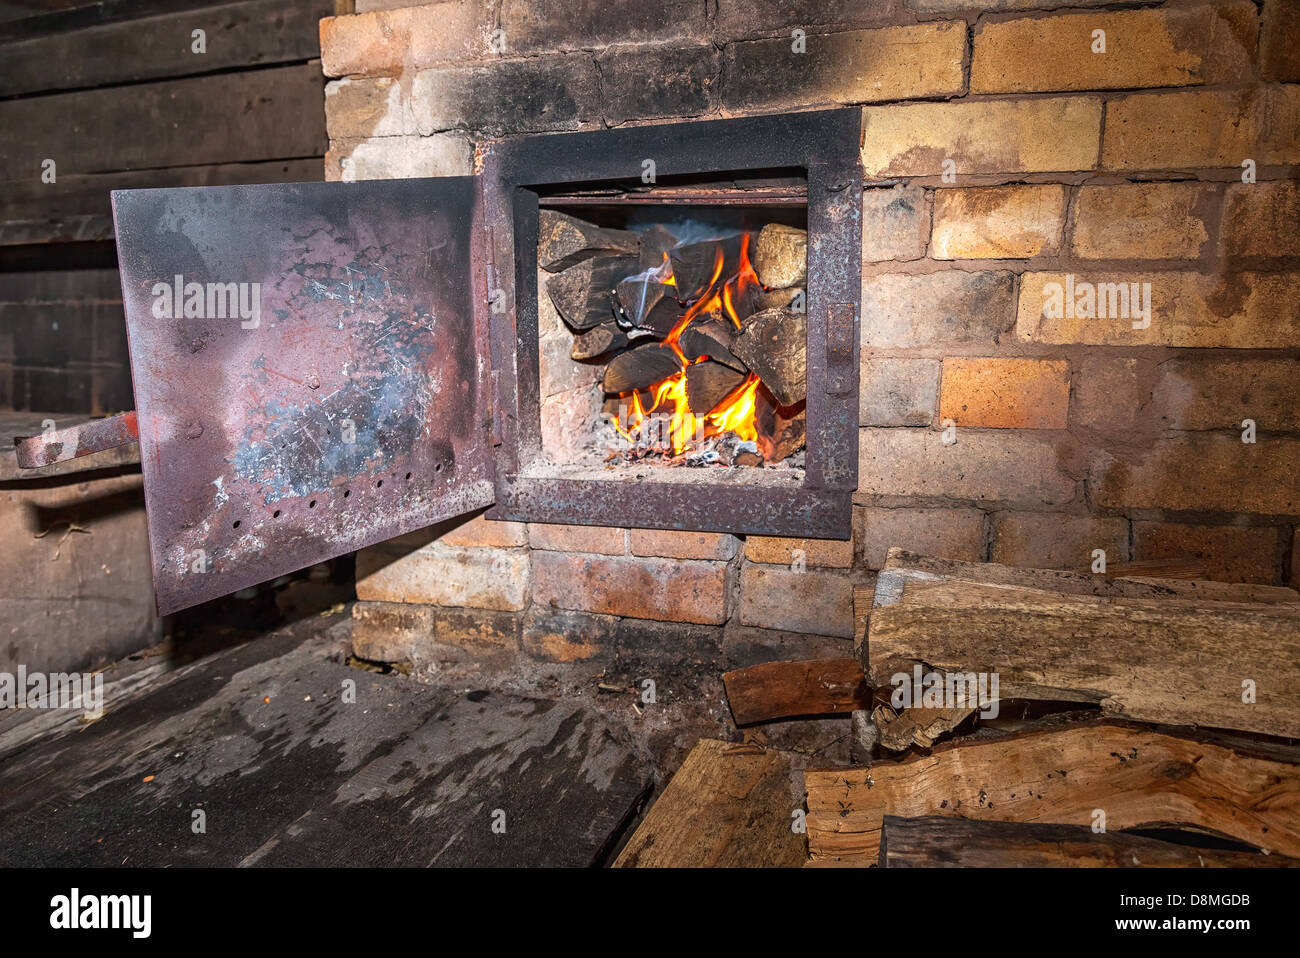 Old stove with open door and burning the wood Stock Photo